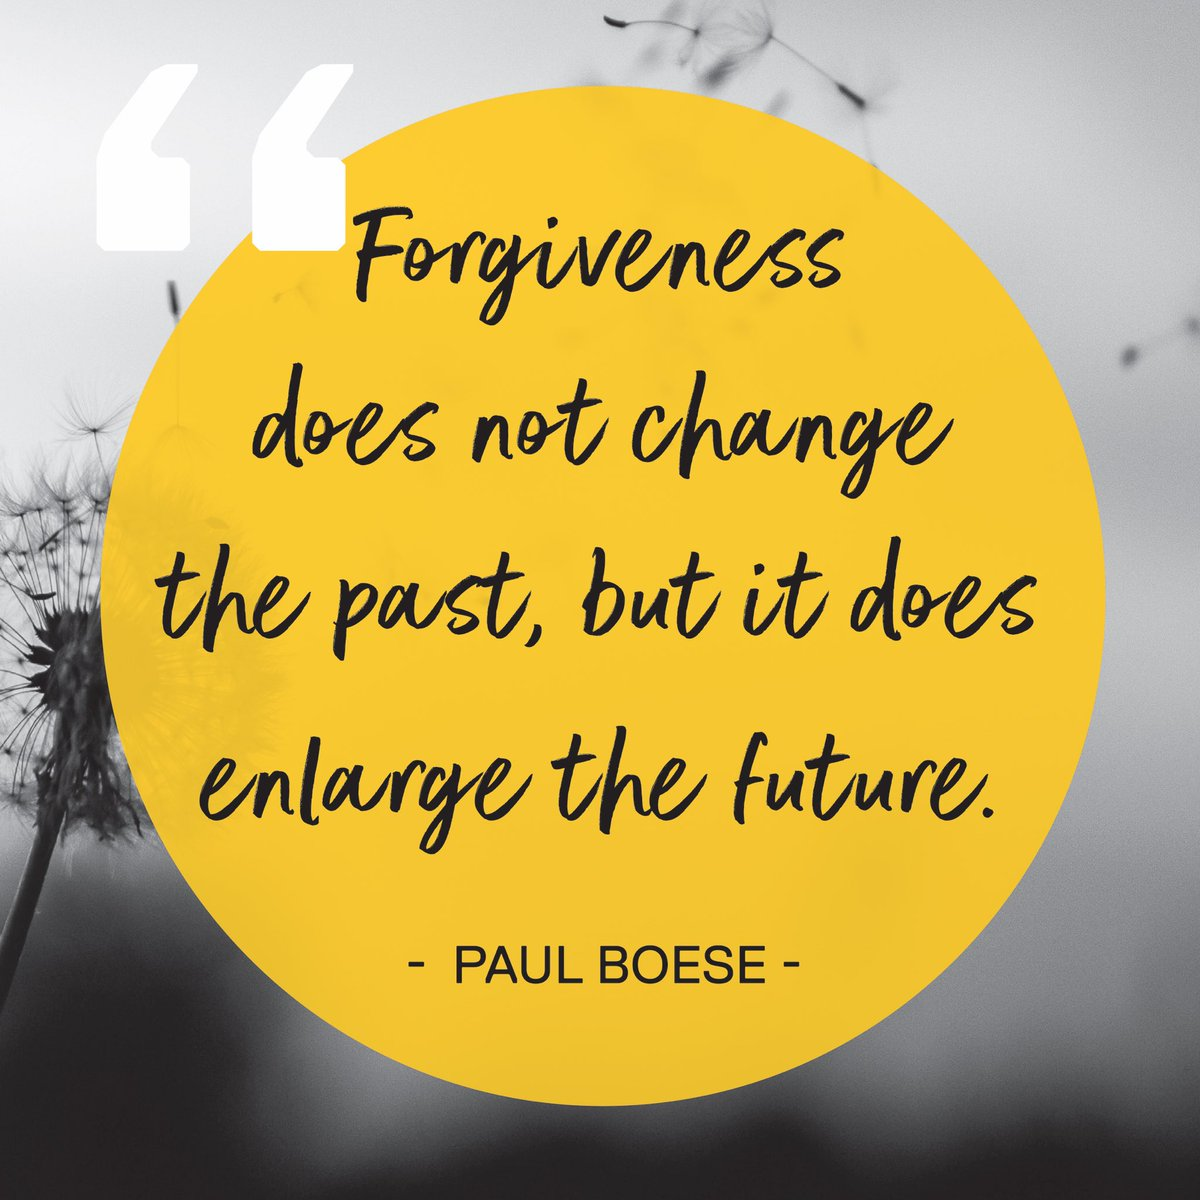 Wise words to start the working week. #forgiveness #future